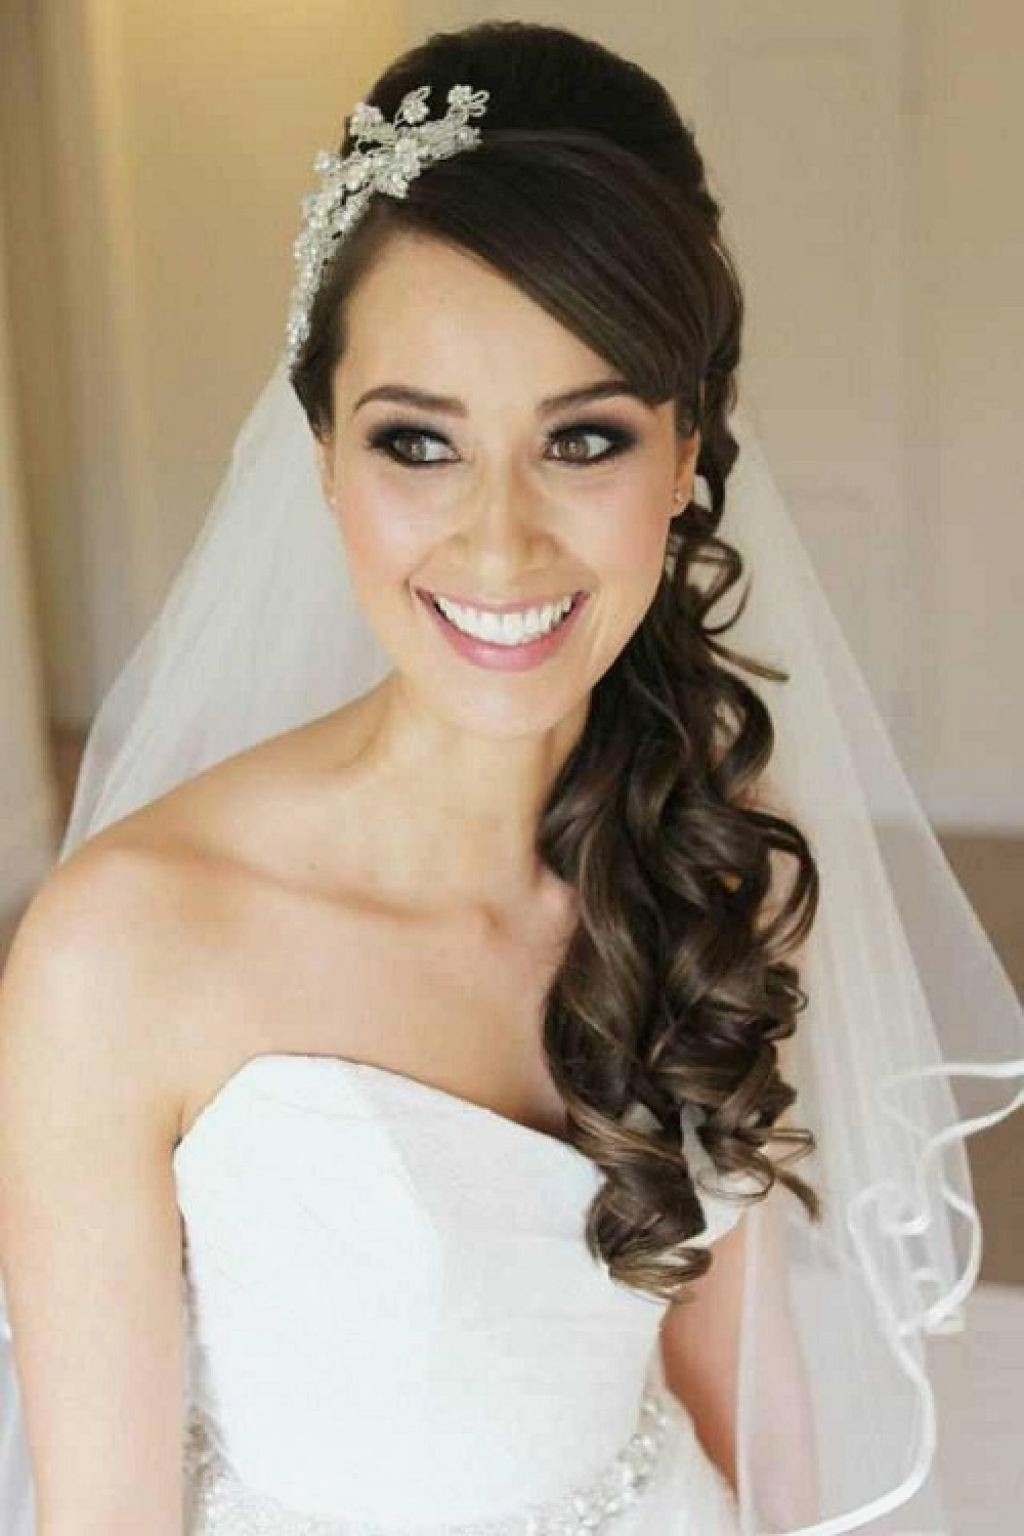 Fashionable Wedding Hairstyles To The Side With Curls For Wedding Hairstyles : Awesome Wedding Hairstyles Side Curls New At (View 5 of 15)